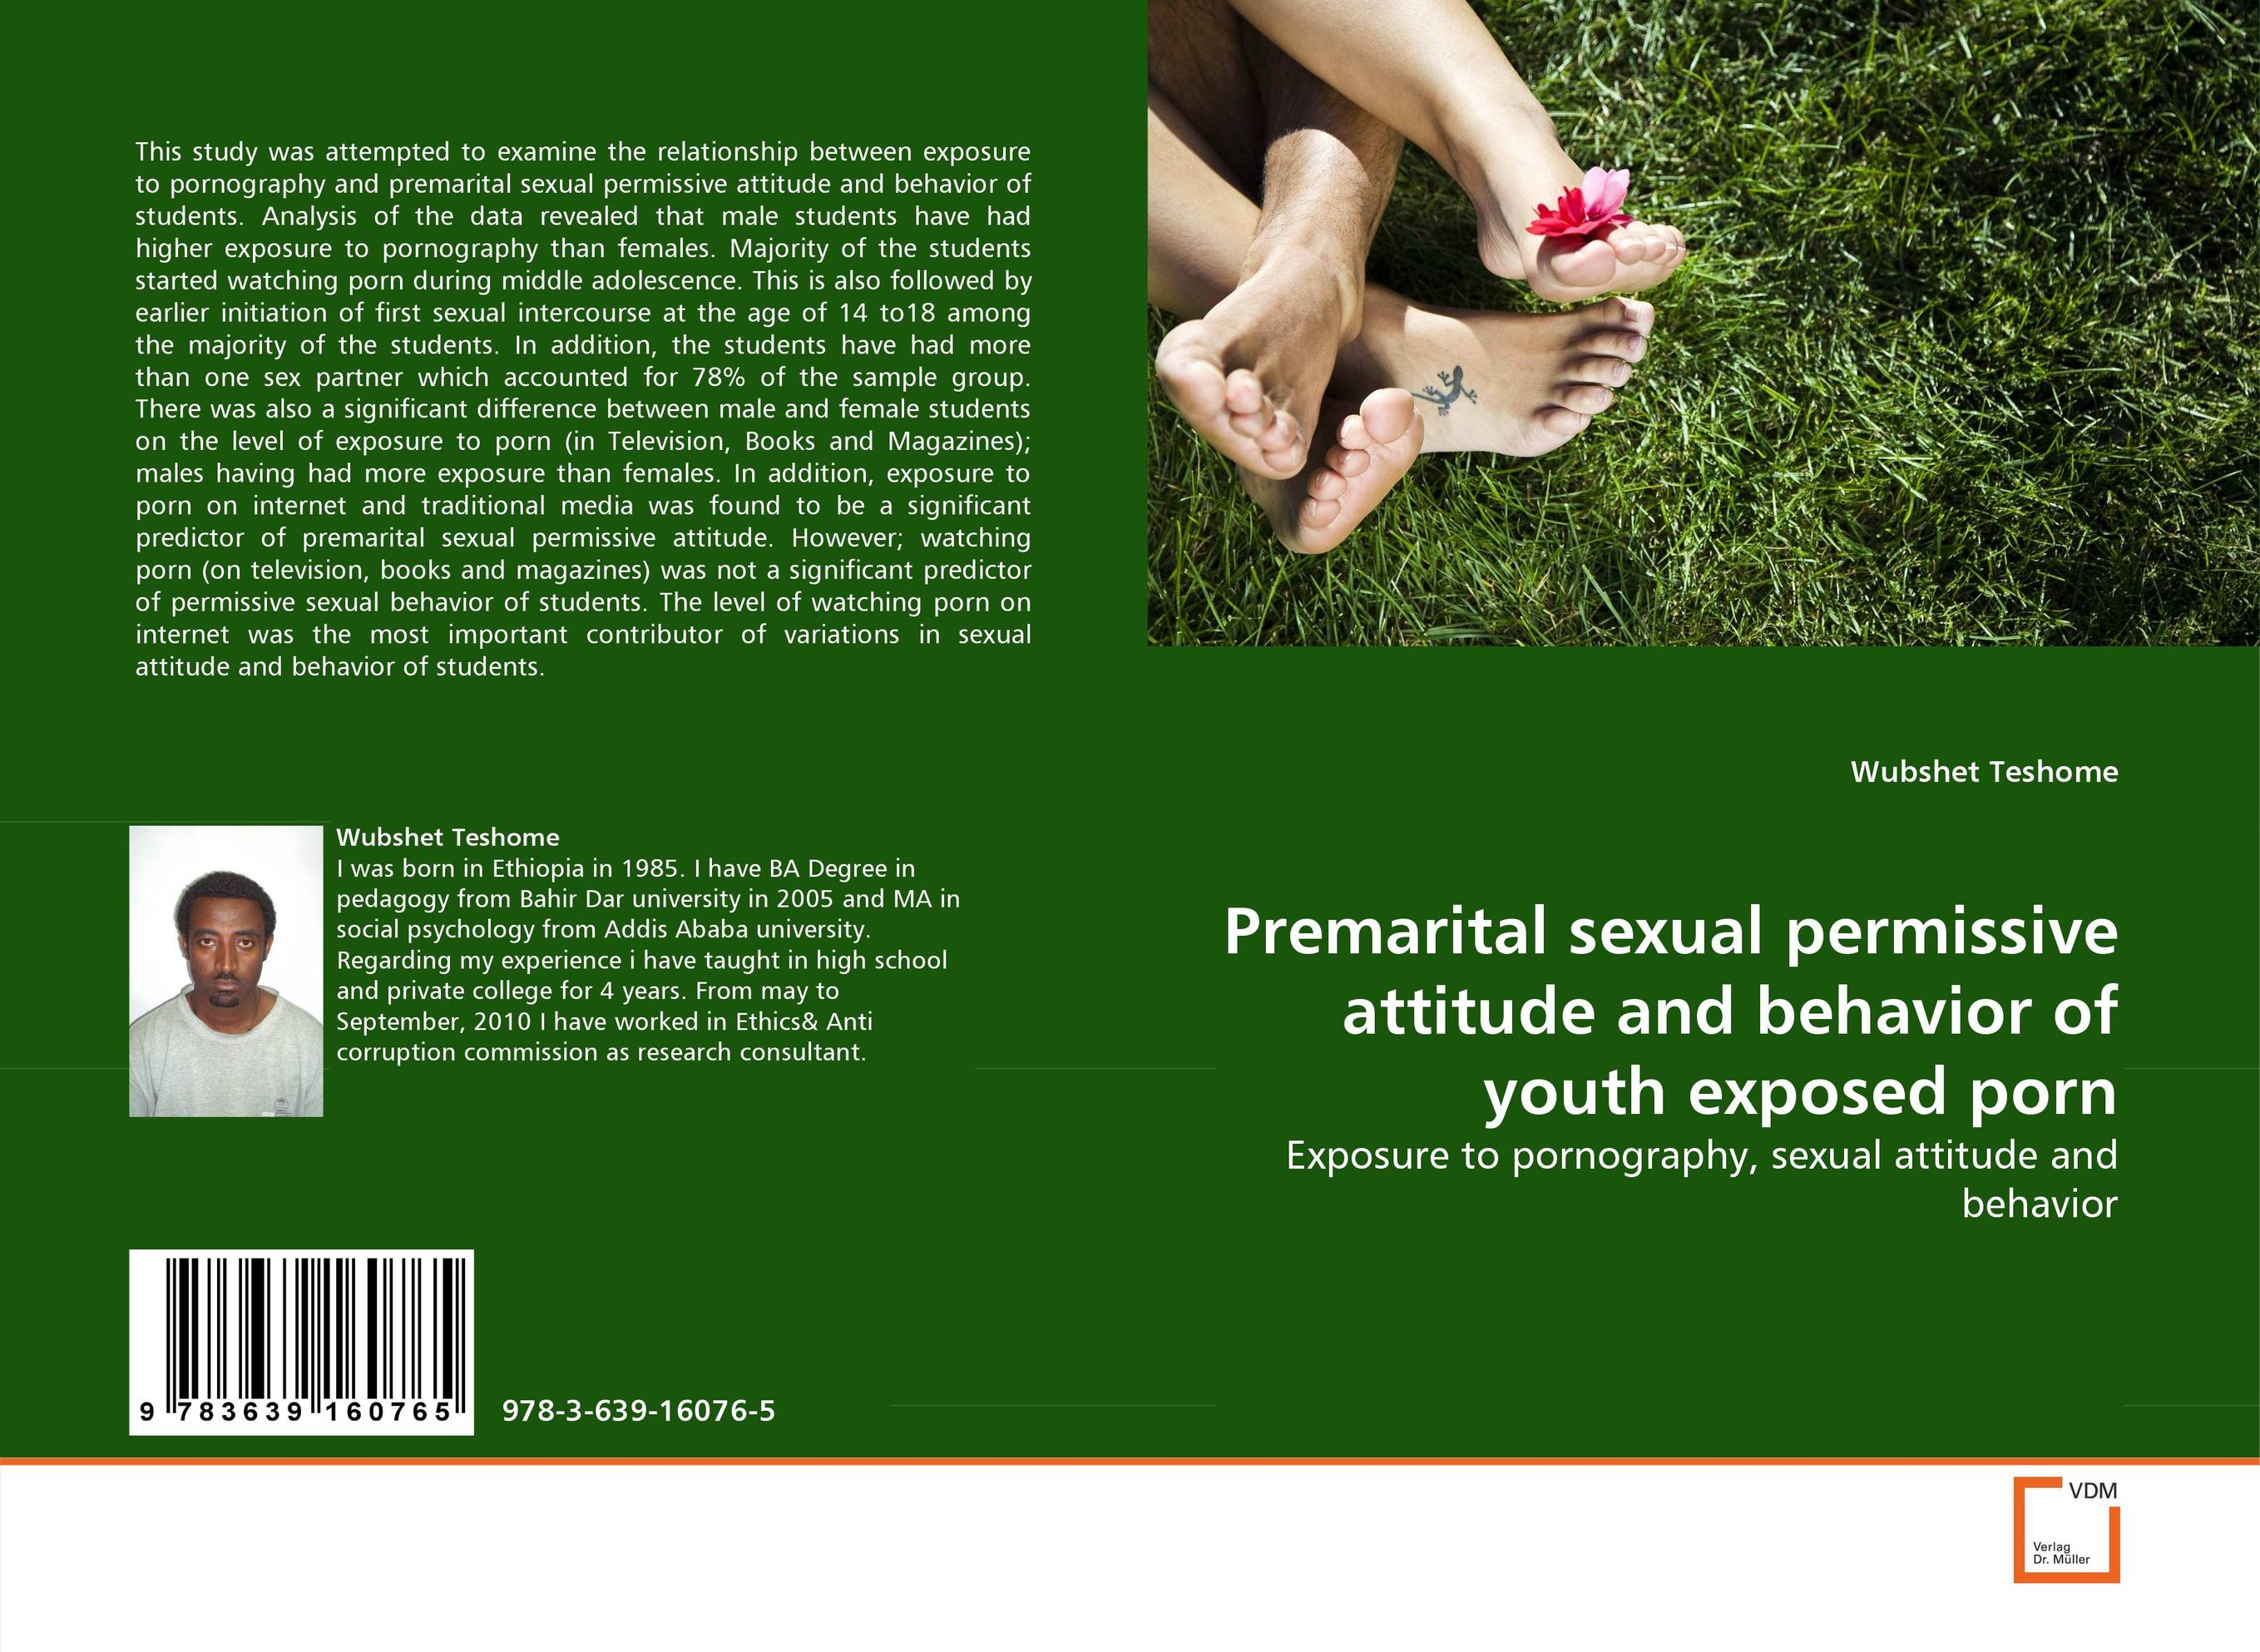 Premarital sexual permissive attitude and behavior of youth exposed porn